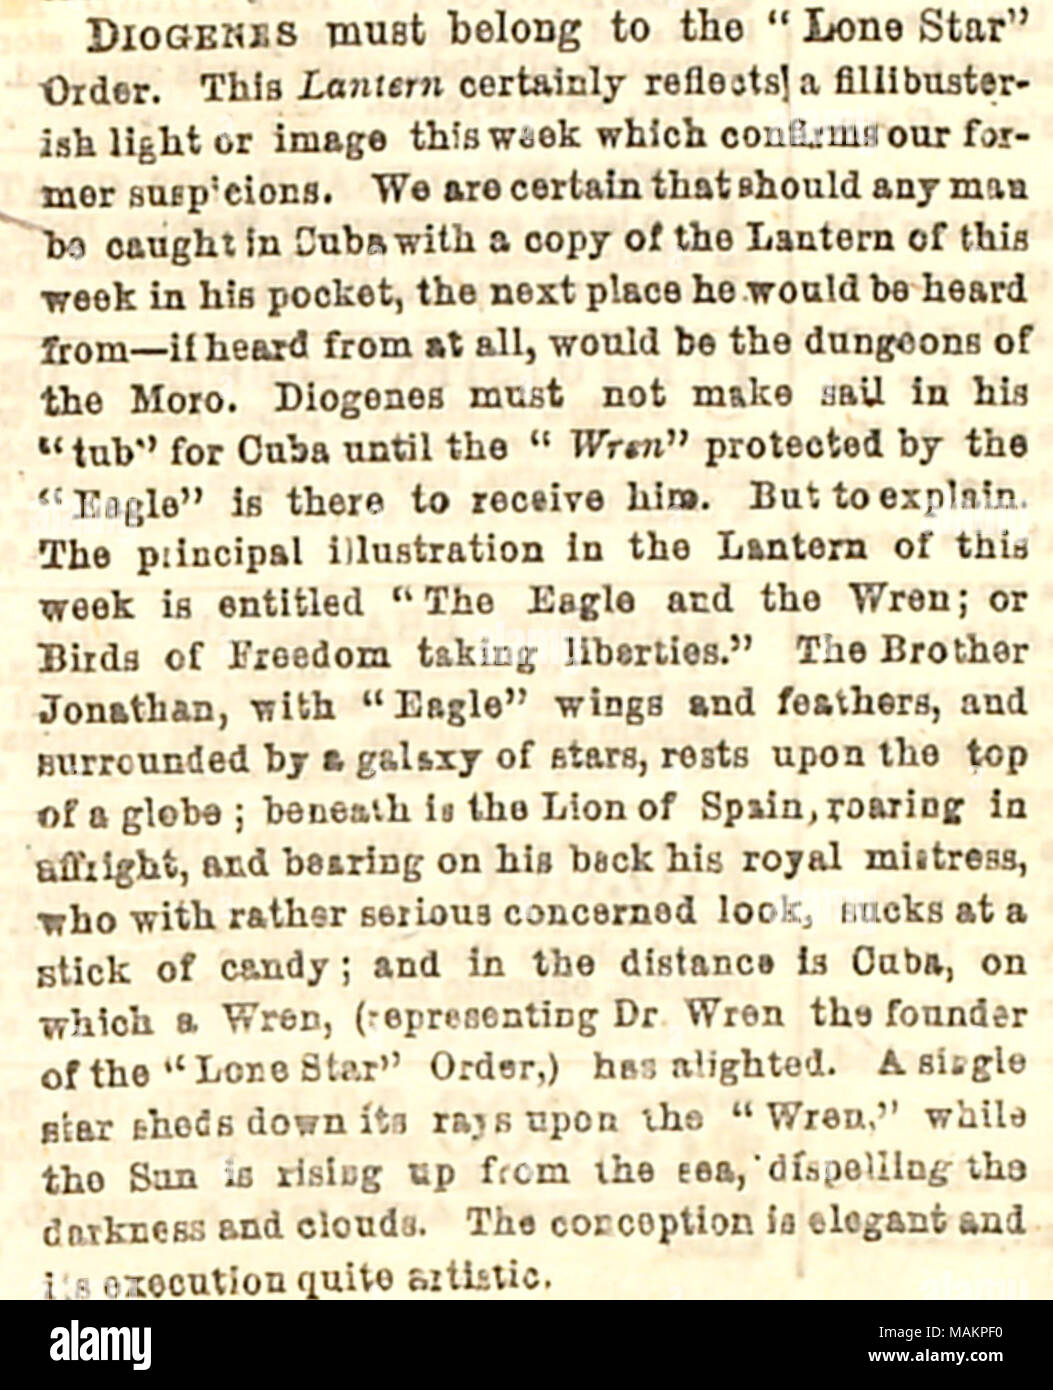 Enclosed newspaper clipping commenting on a Lantern illustration supporting the Lone Star Association in a mission to invade Cuba, likely drawn by Thomas Butler Gunn.  Transcription: DIOGENES must belong to the ?ǣLone Star ? Order. This Lantern certainly reflects a fillibusterish light or image this week which confirms our former suspicions. We are certain that should any man be caught in Cuba with a copy of the Lantern of this week in his pocket, the next place he would be heard from ?if heard from at all, would be the dungeons of the Moro. Diogenes must not make sail in his ?ǣtub ? for Cuba  - Stock Image